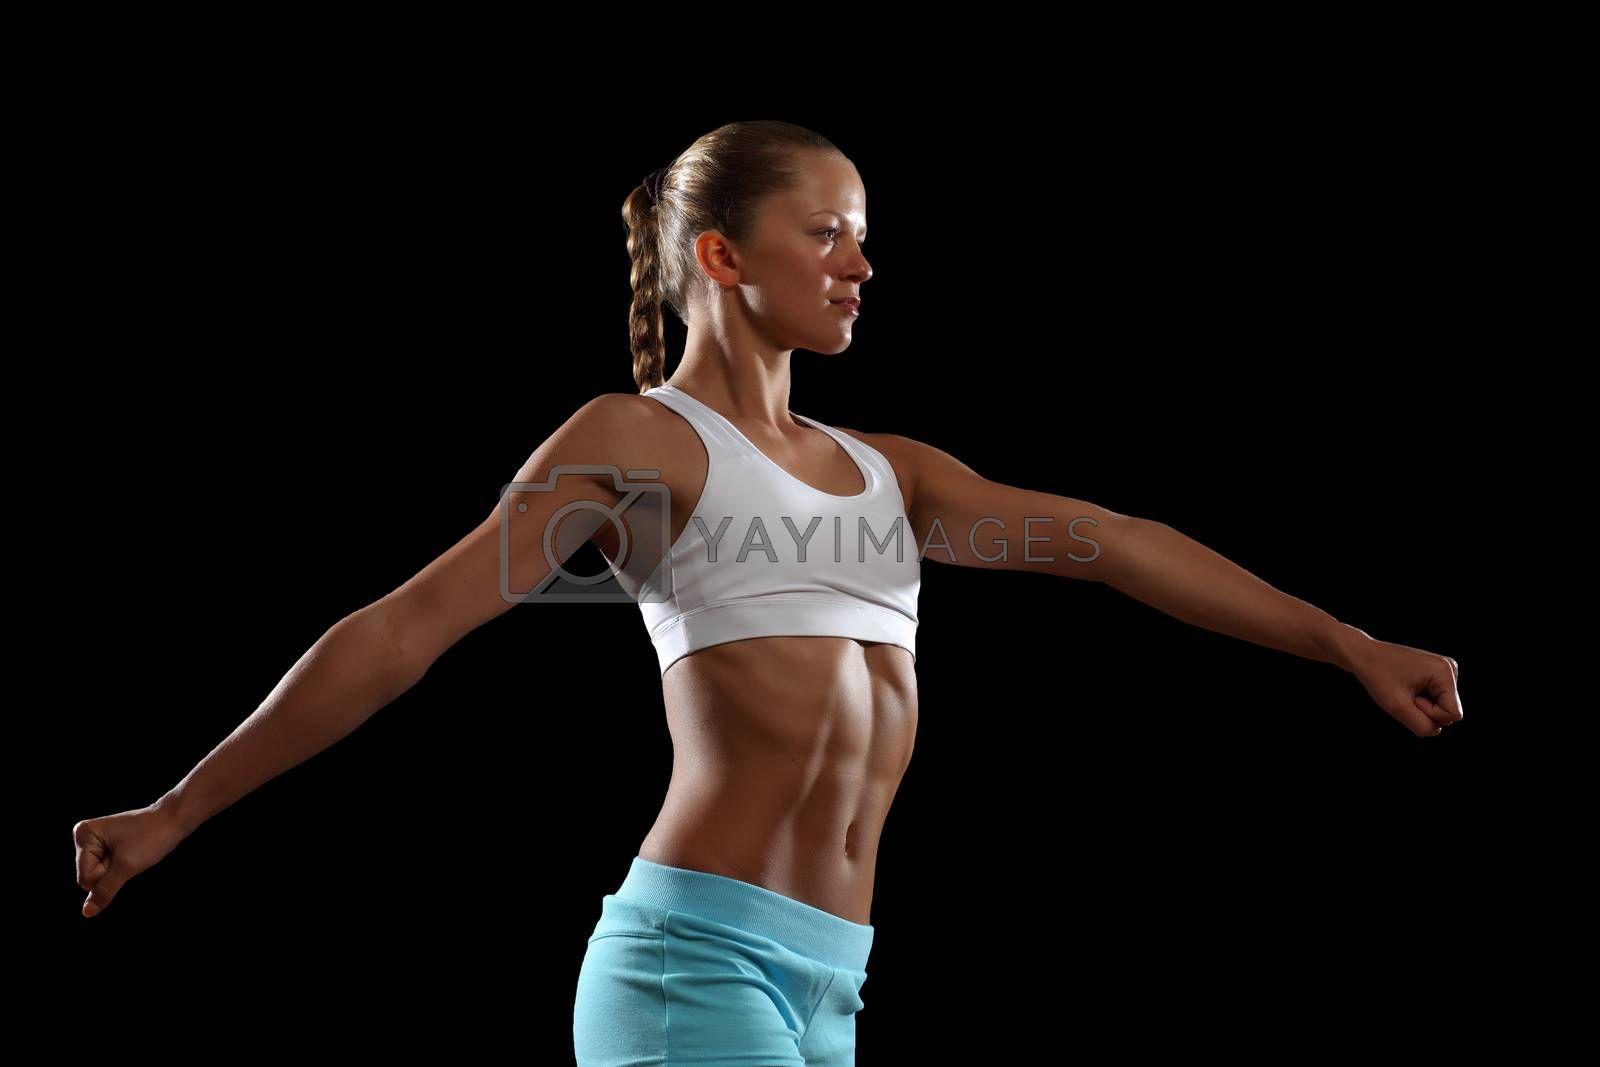 Fitness woman smiling by Sergey Nivens